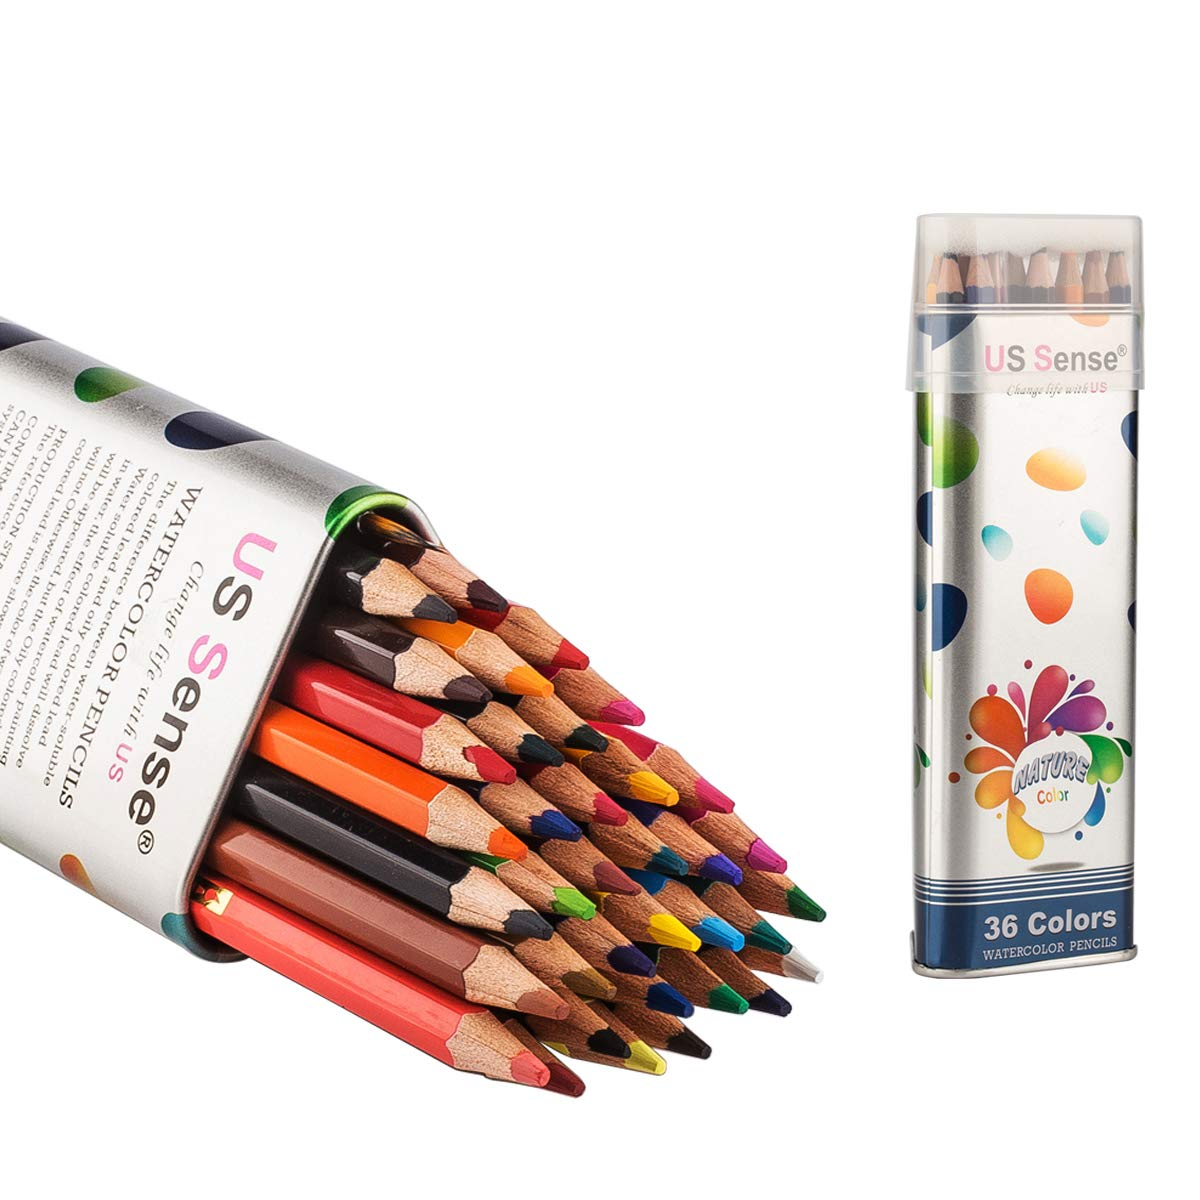 US Sense 36 Watercolor Pencils Set Premier Soft 3.5mm Lead Thicker than Traditional Colored Pencils Ideal for Coloring, Blending and Layering,Artist Drawing Sketching With Brush